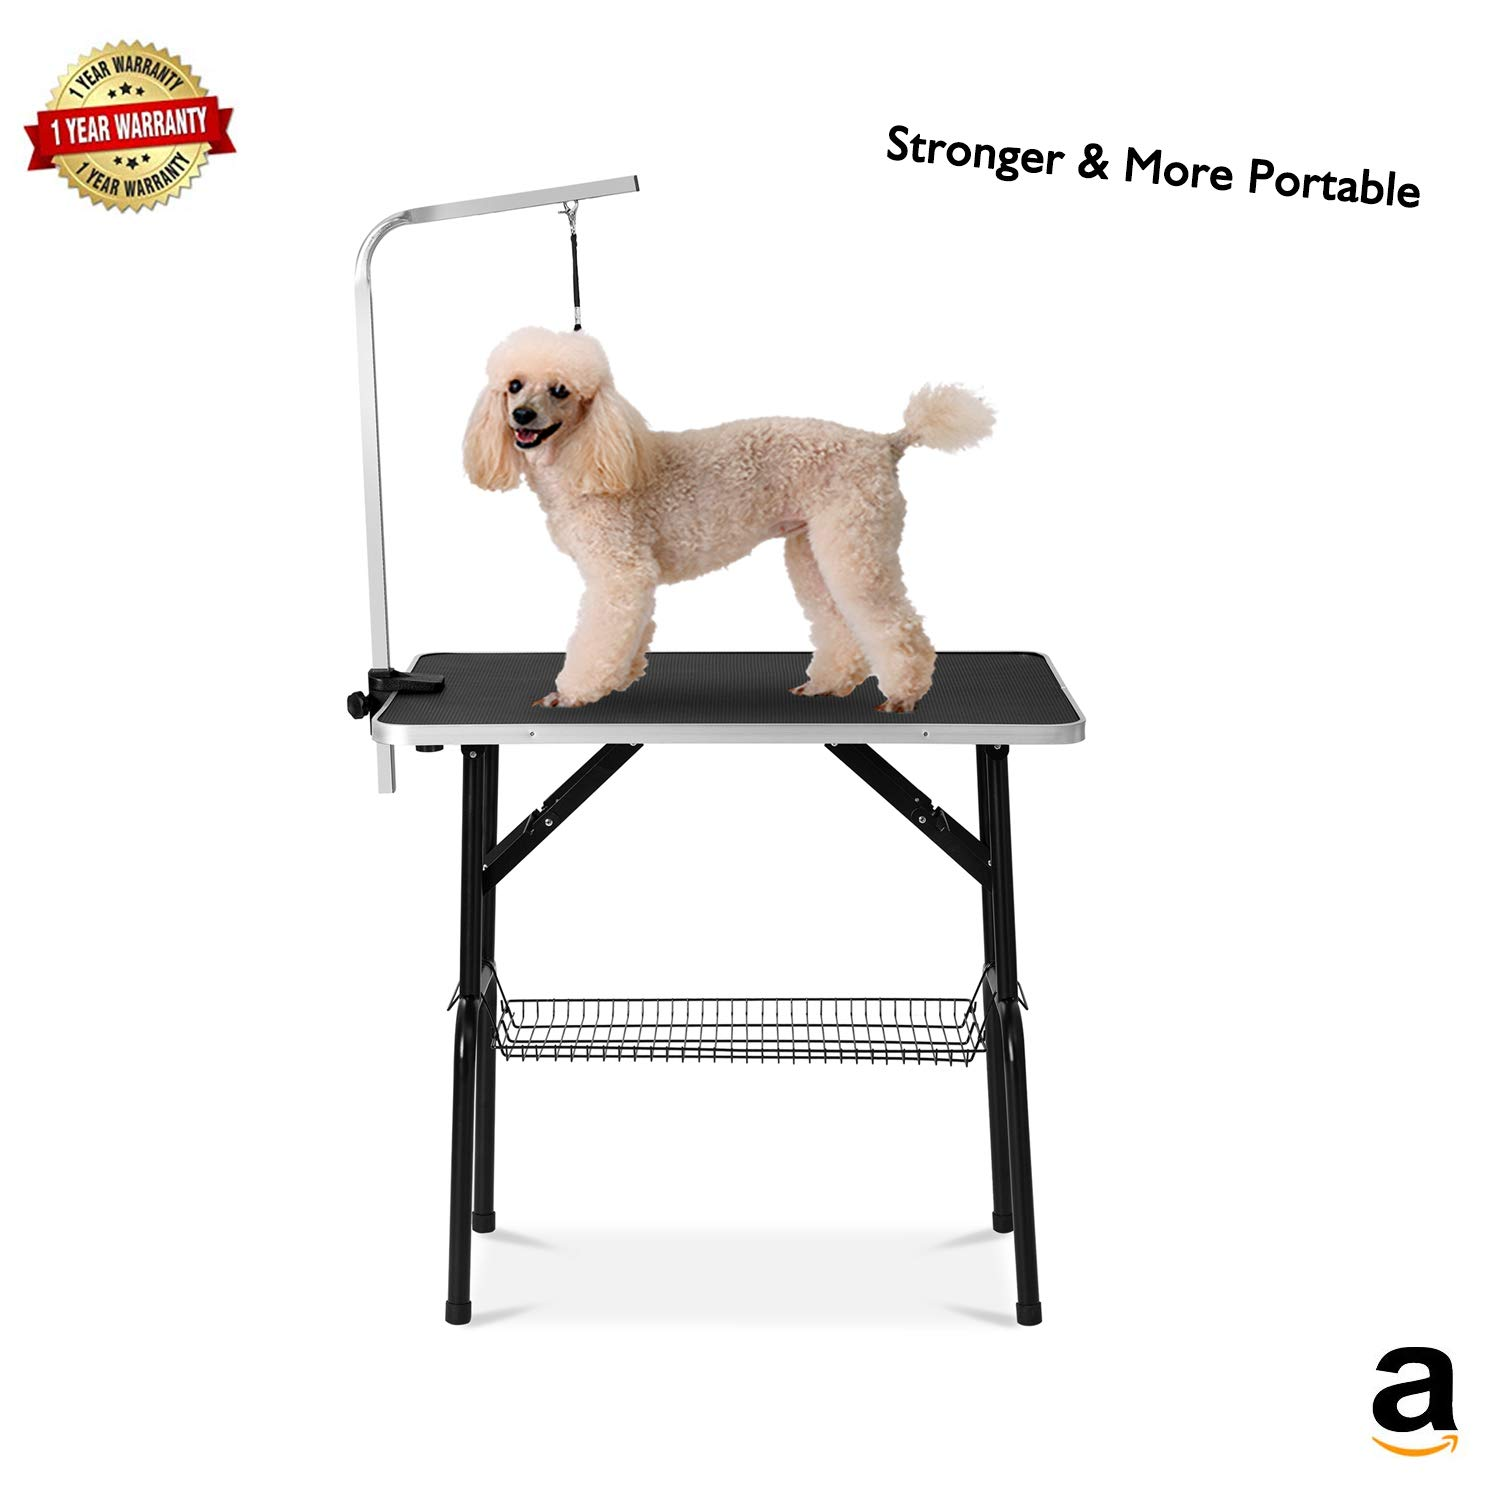 Professional Grooming Table 32'' for Dogs & Pets Foldable & Durable with Adjustable Arm, Stainless Leg Frame, Storage Tray, MDF Board & Rubber Mat